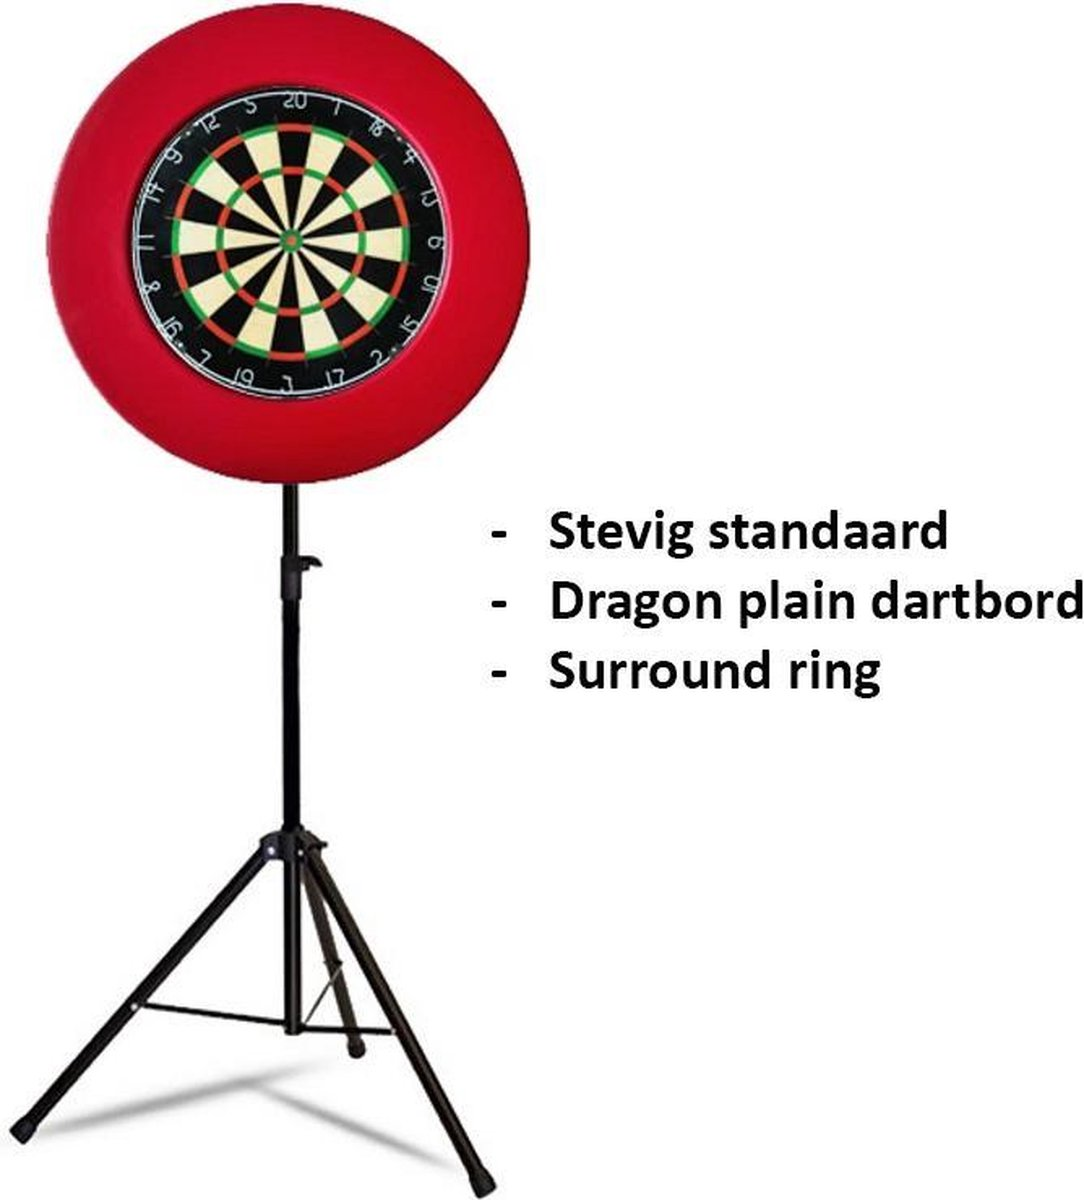 Dragon darts - Portable dartbord standaard pakket - inclusief best geteste - dartbord en - dartbord surround ring - rood